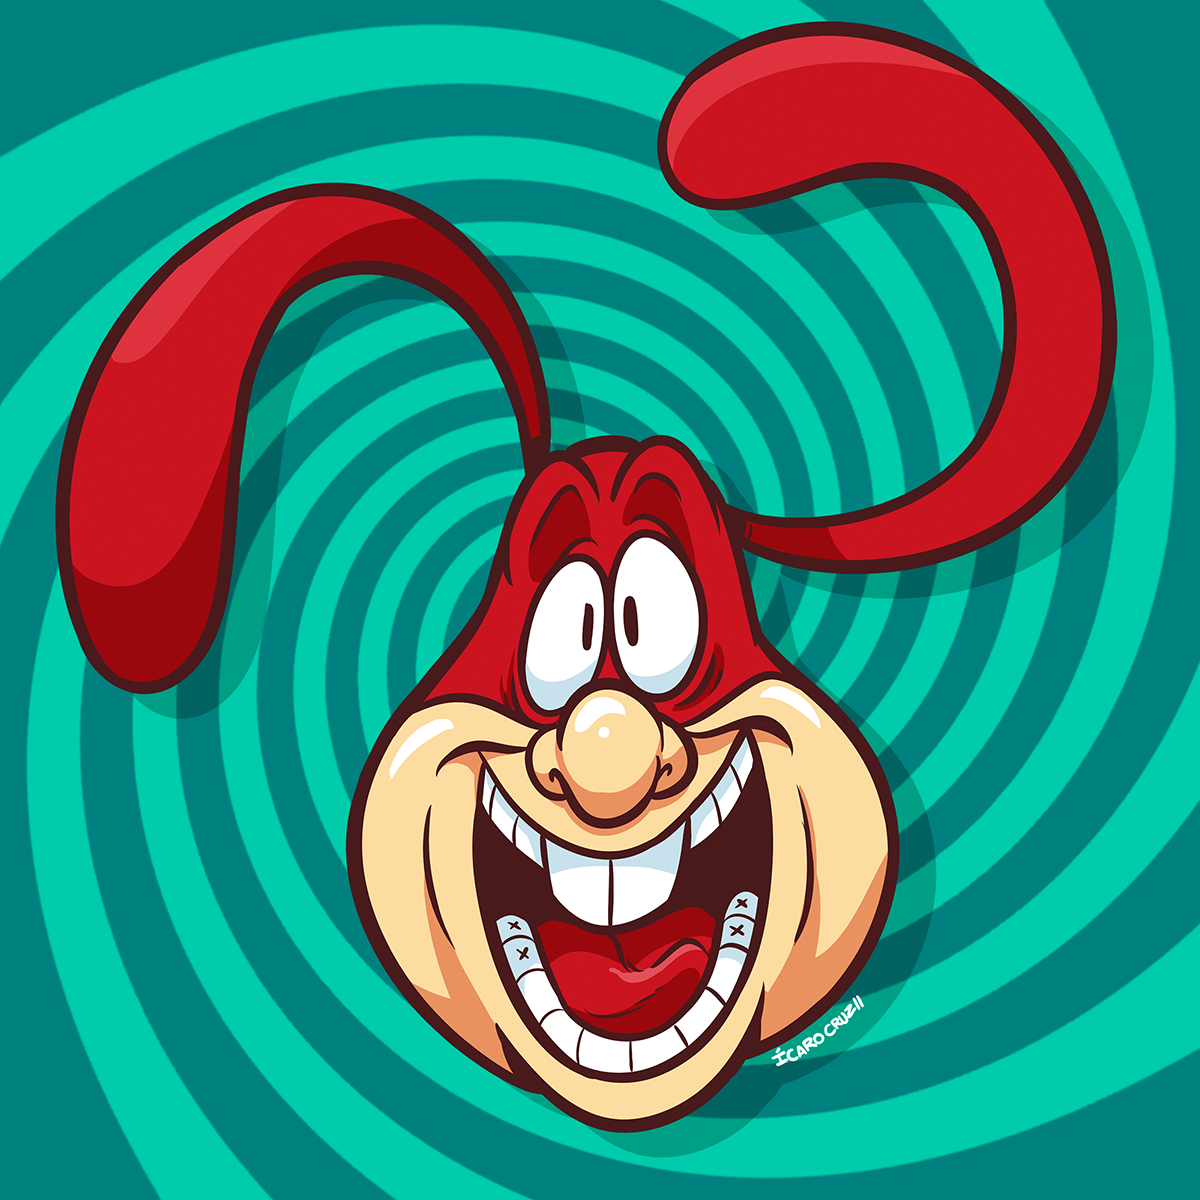 TIME TO GO NOID